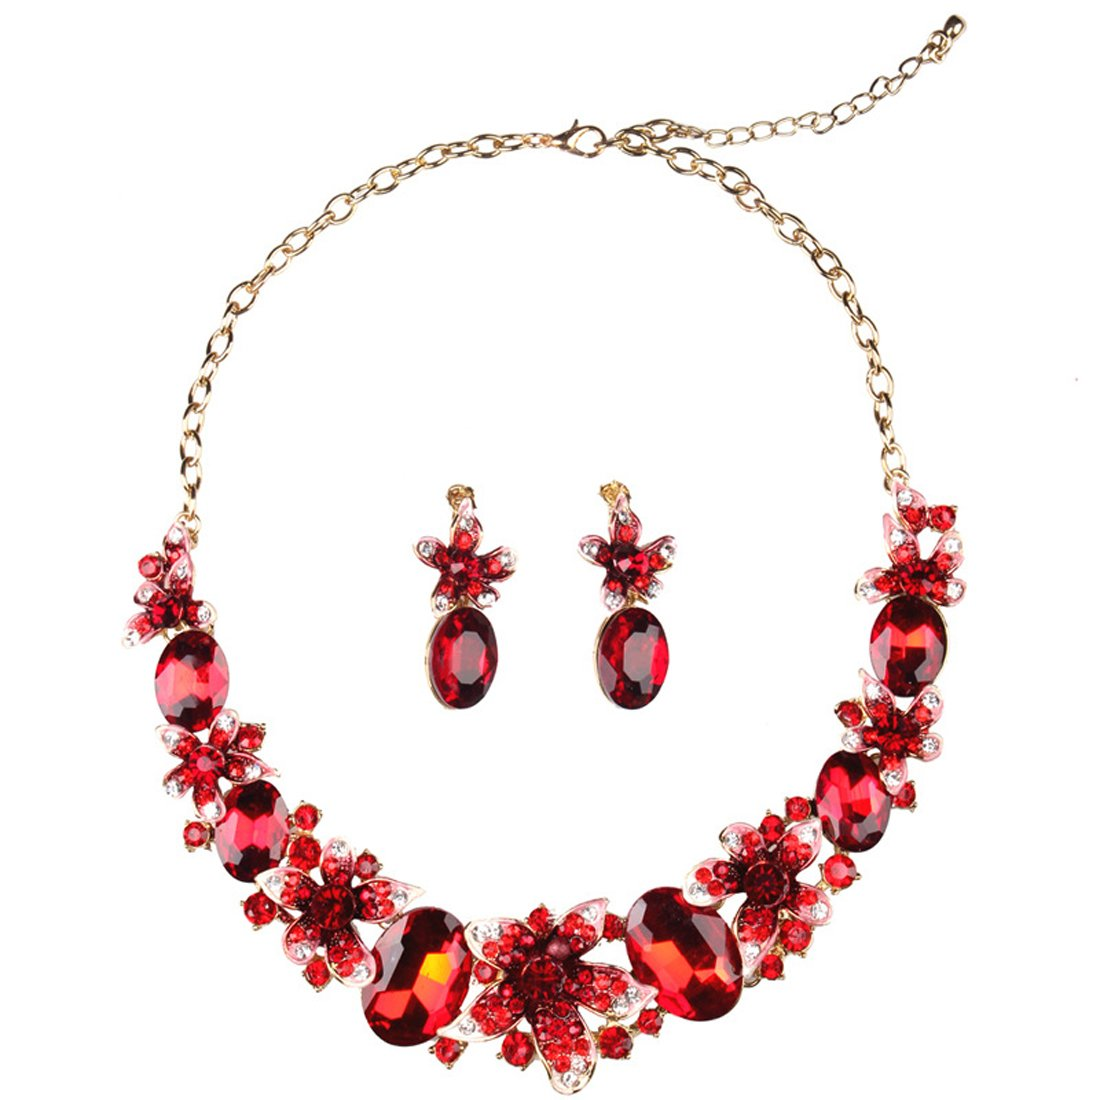 Hamer Charm Crystal Statement Choker Necklace and Earrings Women Pendant costume Jewelry Sets (Red)